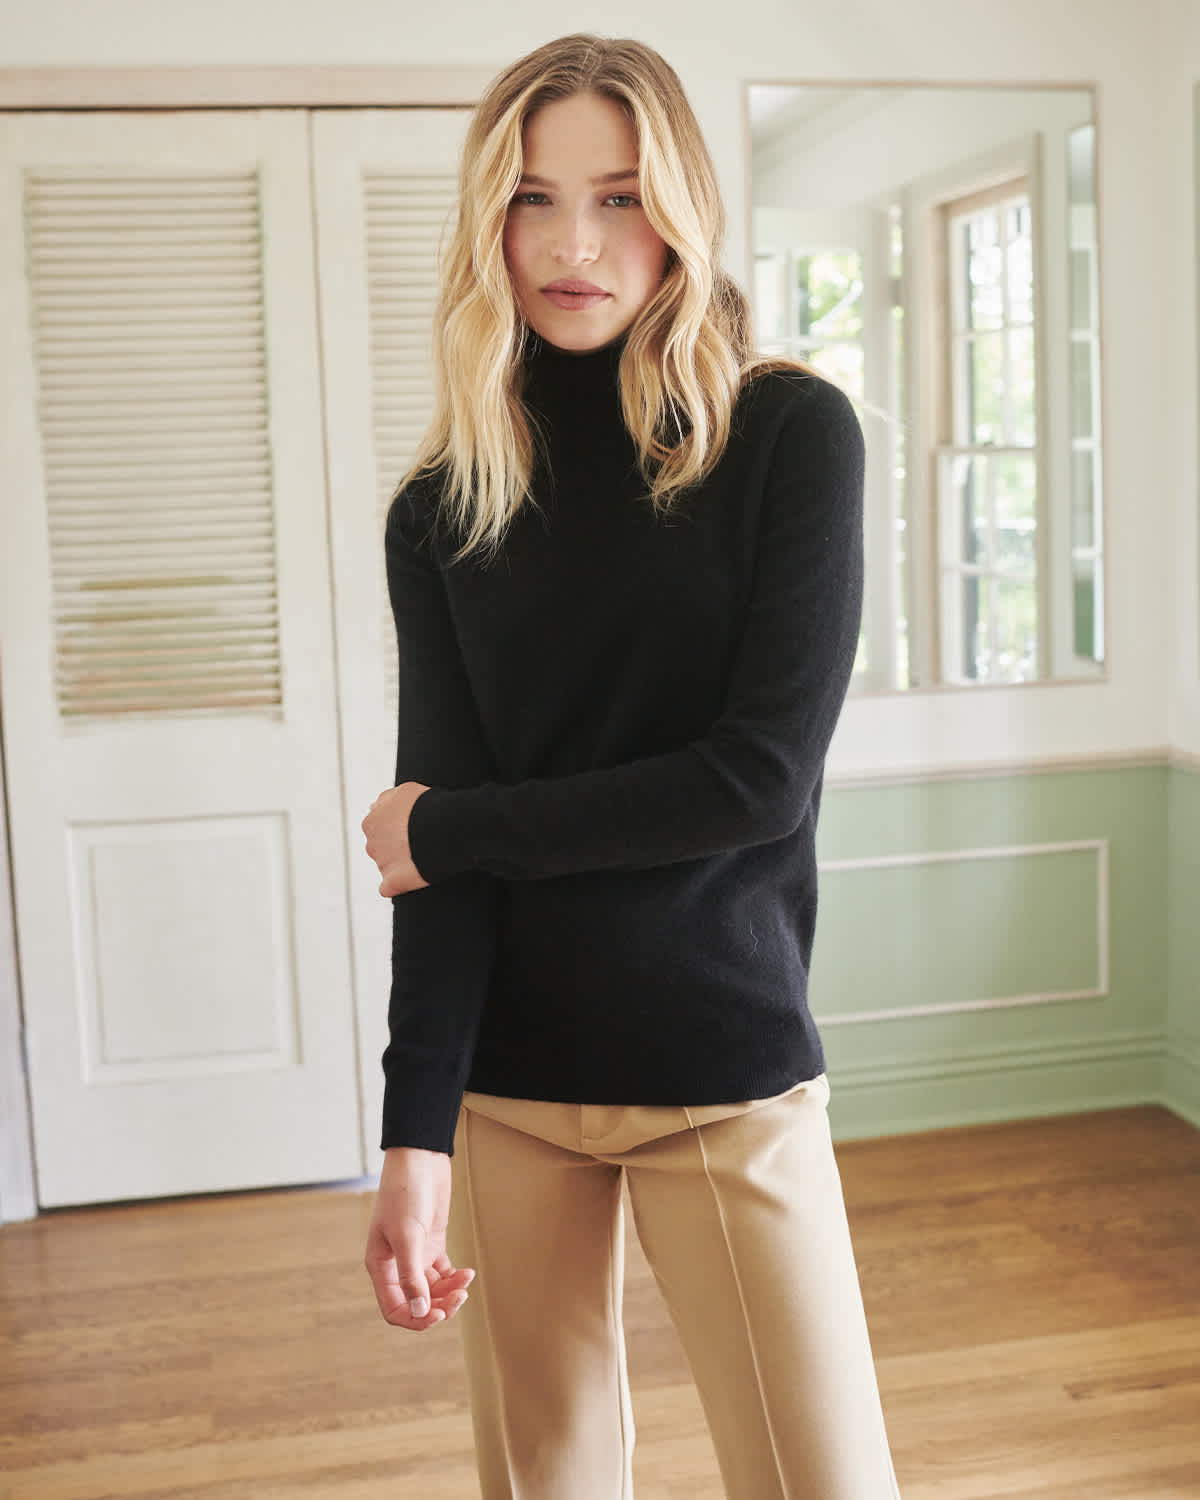 Woman wearing black cashmere turtleneck sweater close